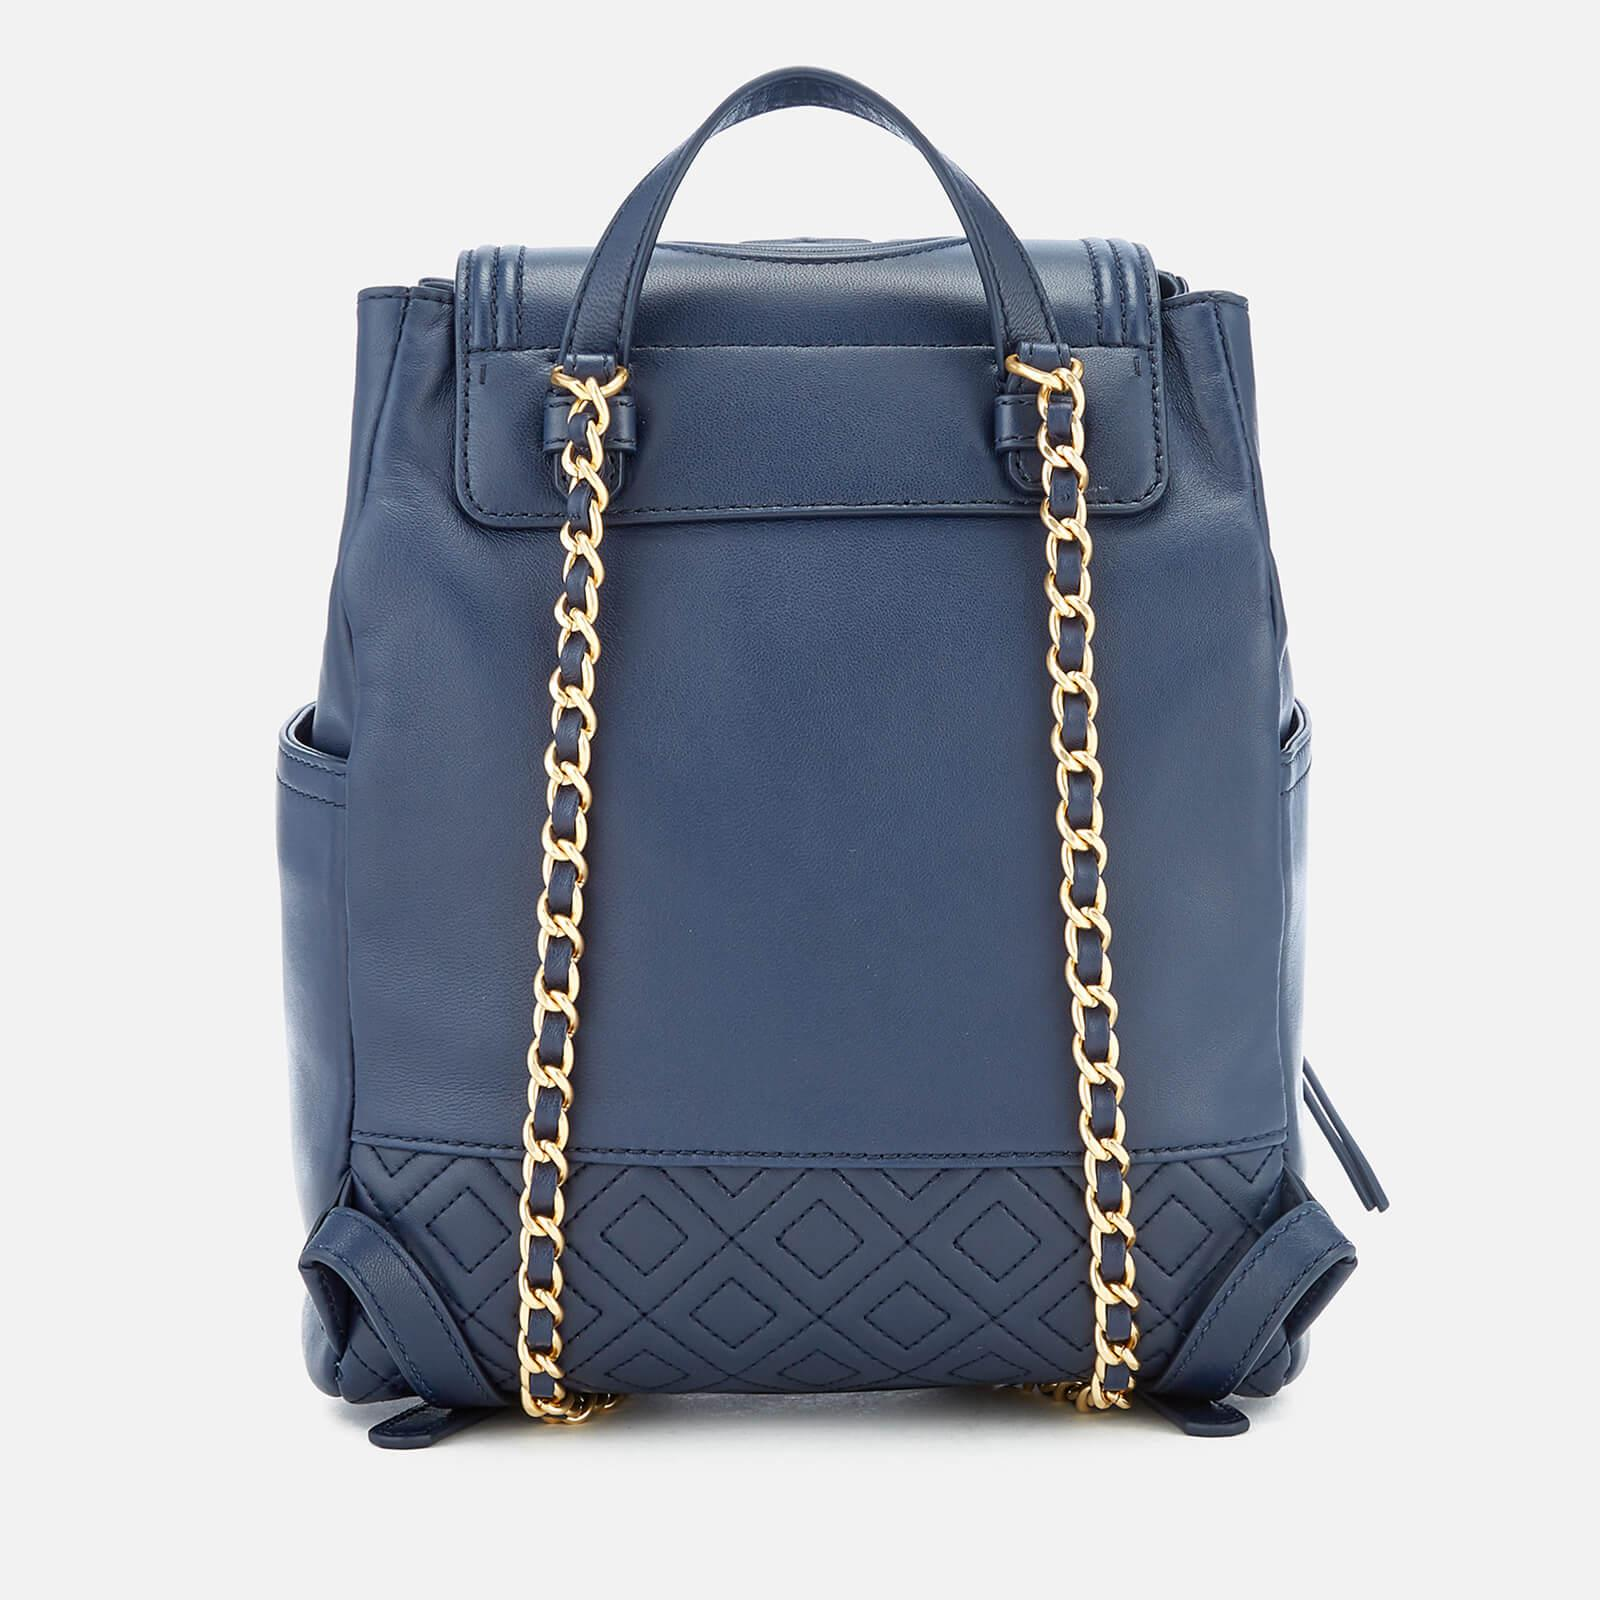 a5a327edda35 Tory Burch - Blue Fleming Backpack - Lyst. View fullscreen